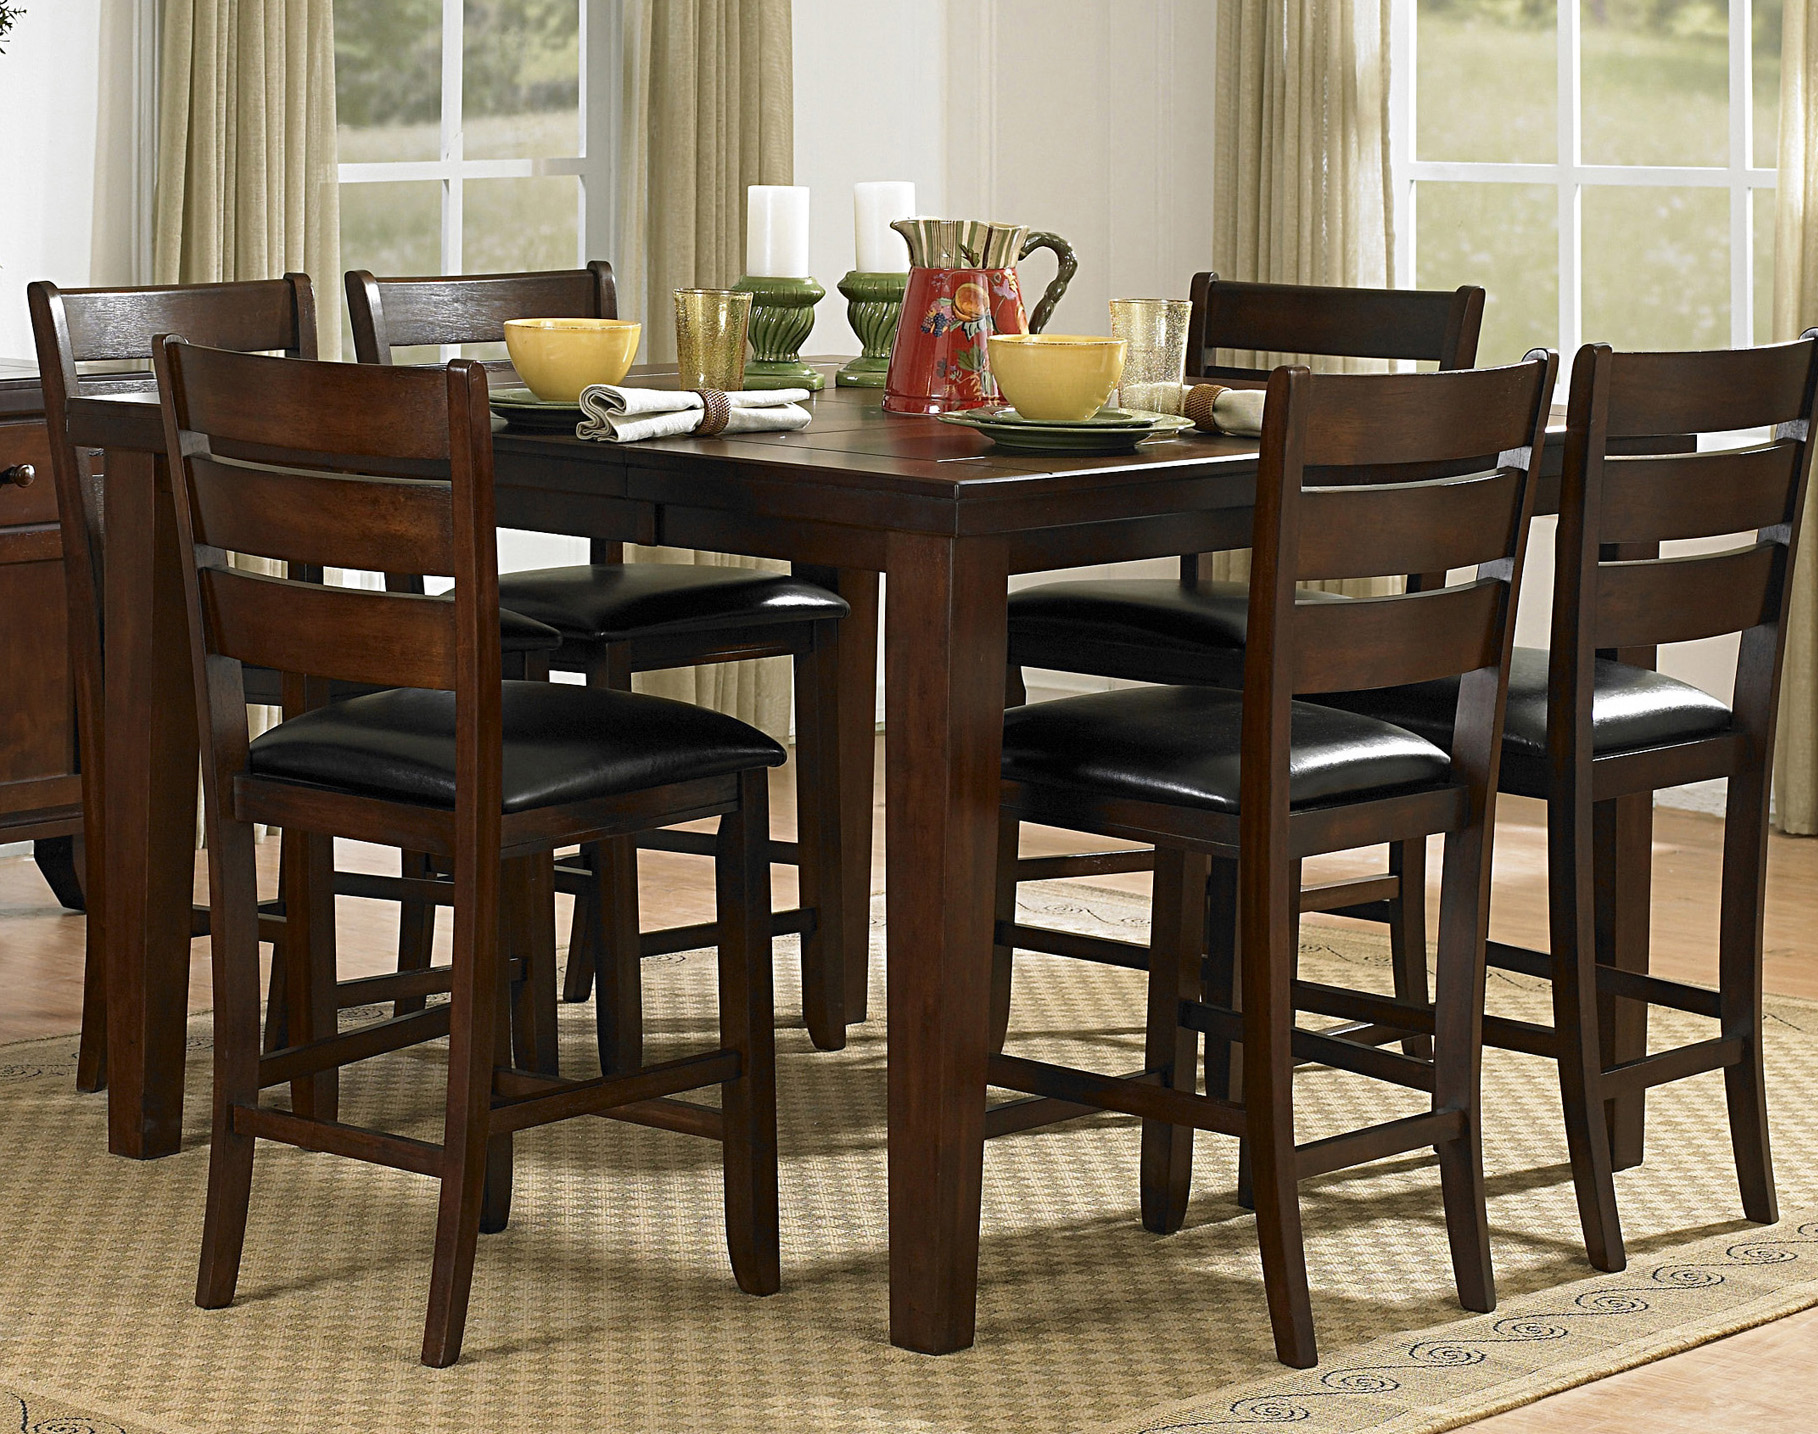 Homelegance ameillia counter height dining table dallas tx dining room dining tables - Height dining room table ...